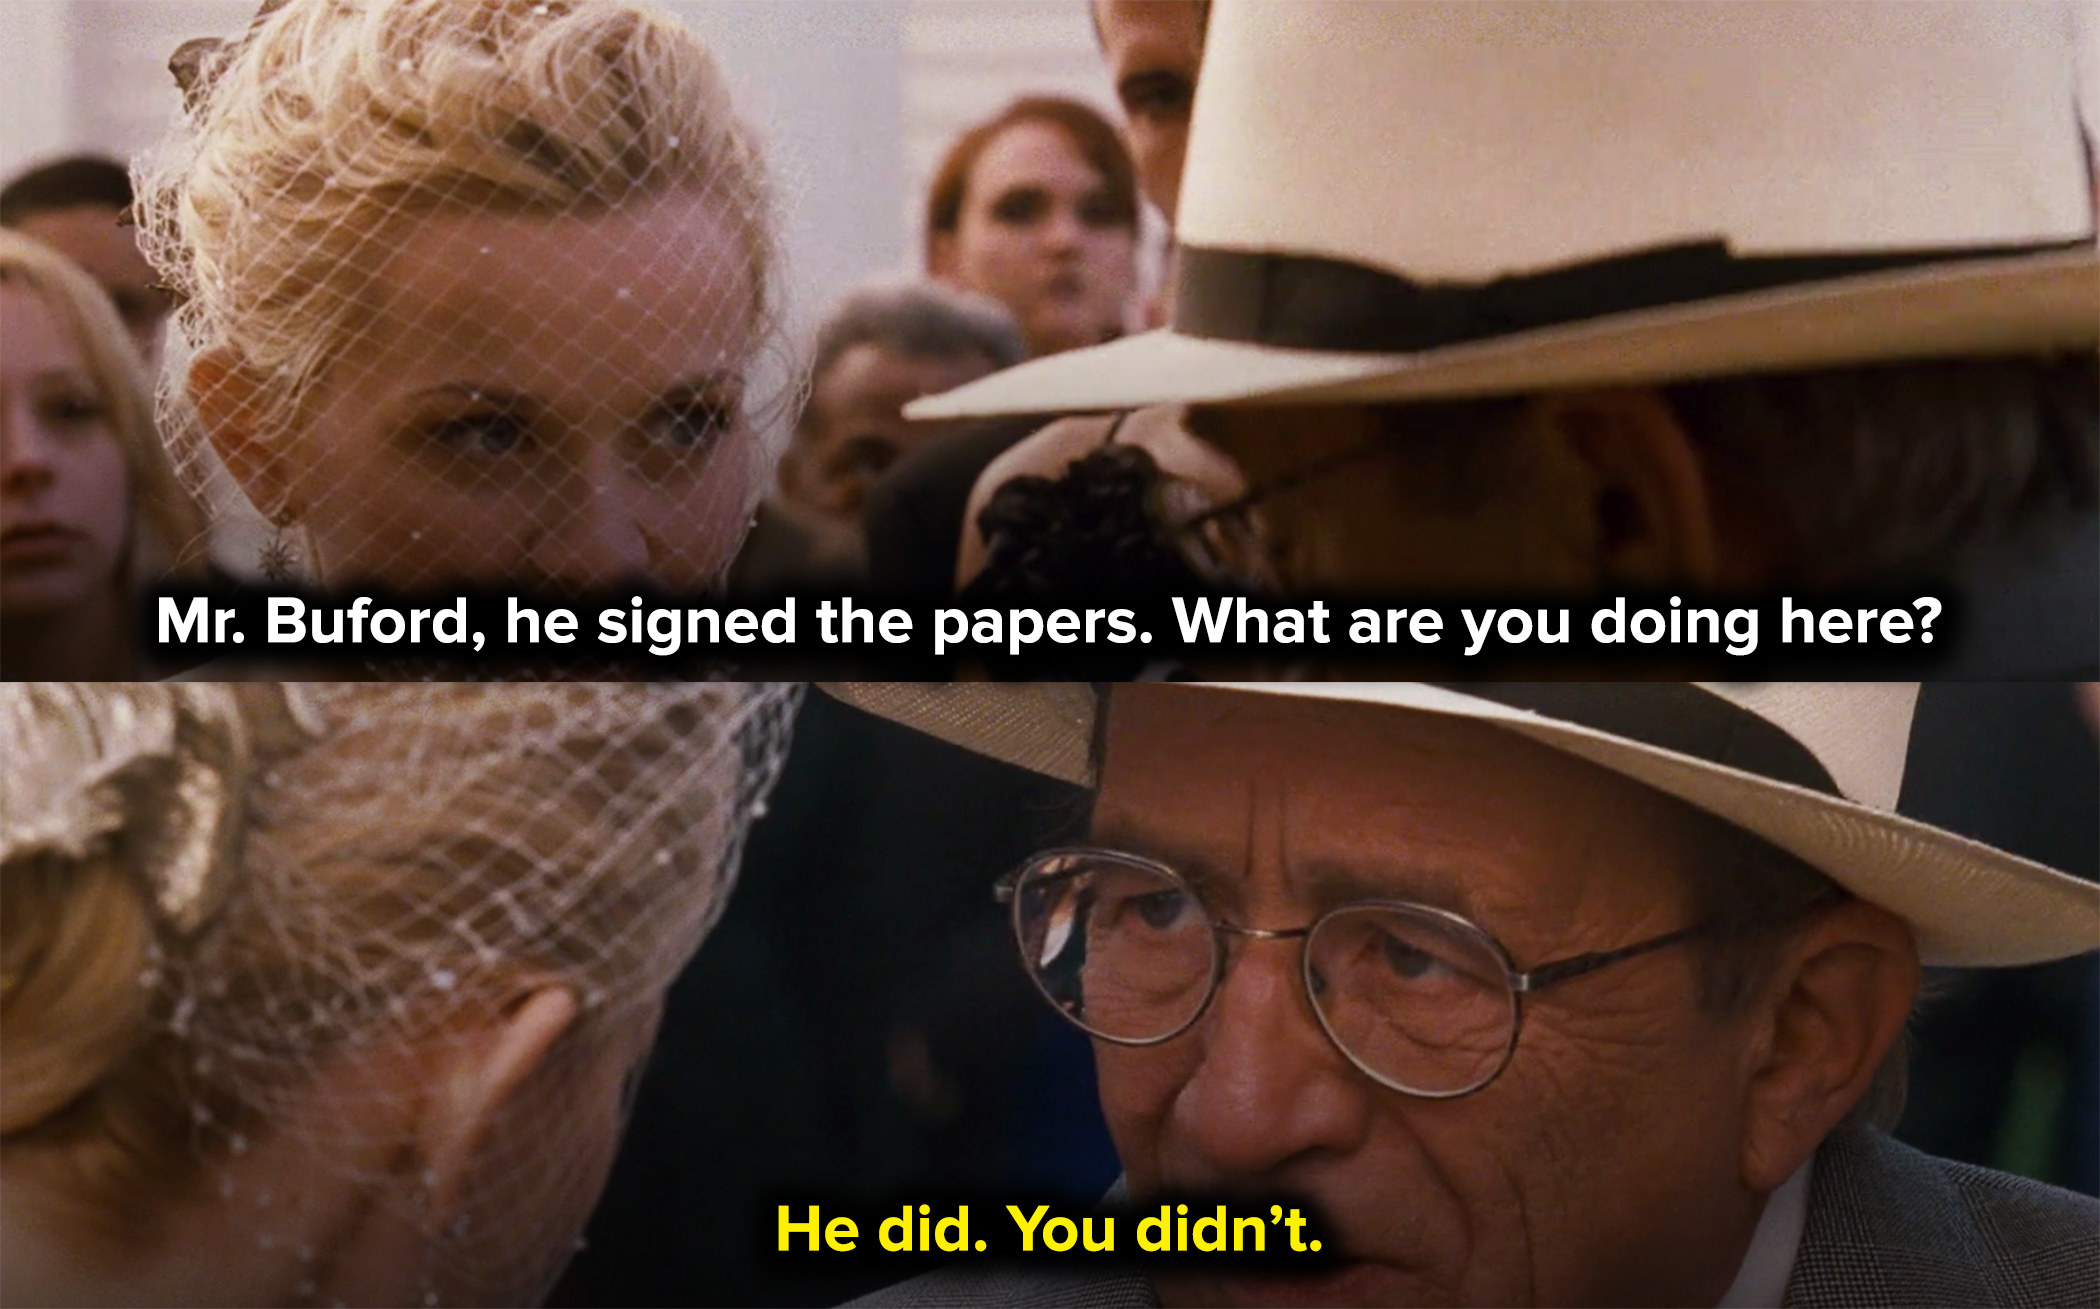 the lawyer stops the wedding to tell Melanie she didn't sign her papers